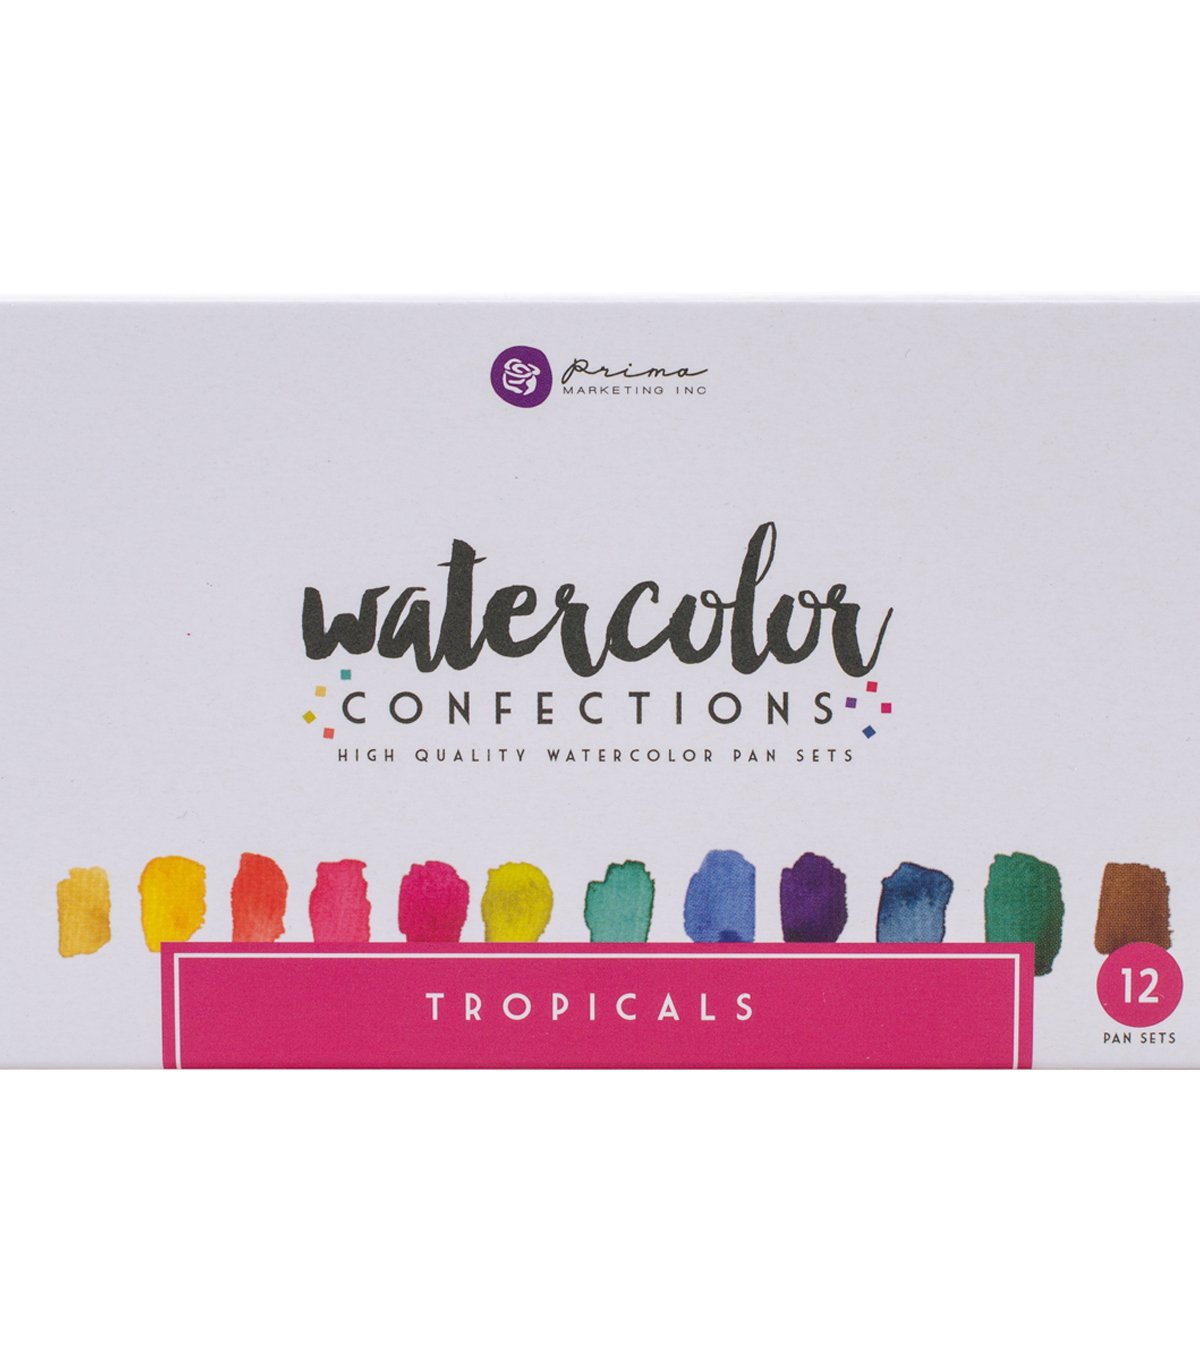 Tropicals -watercolor Confectns